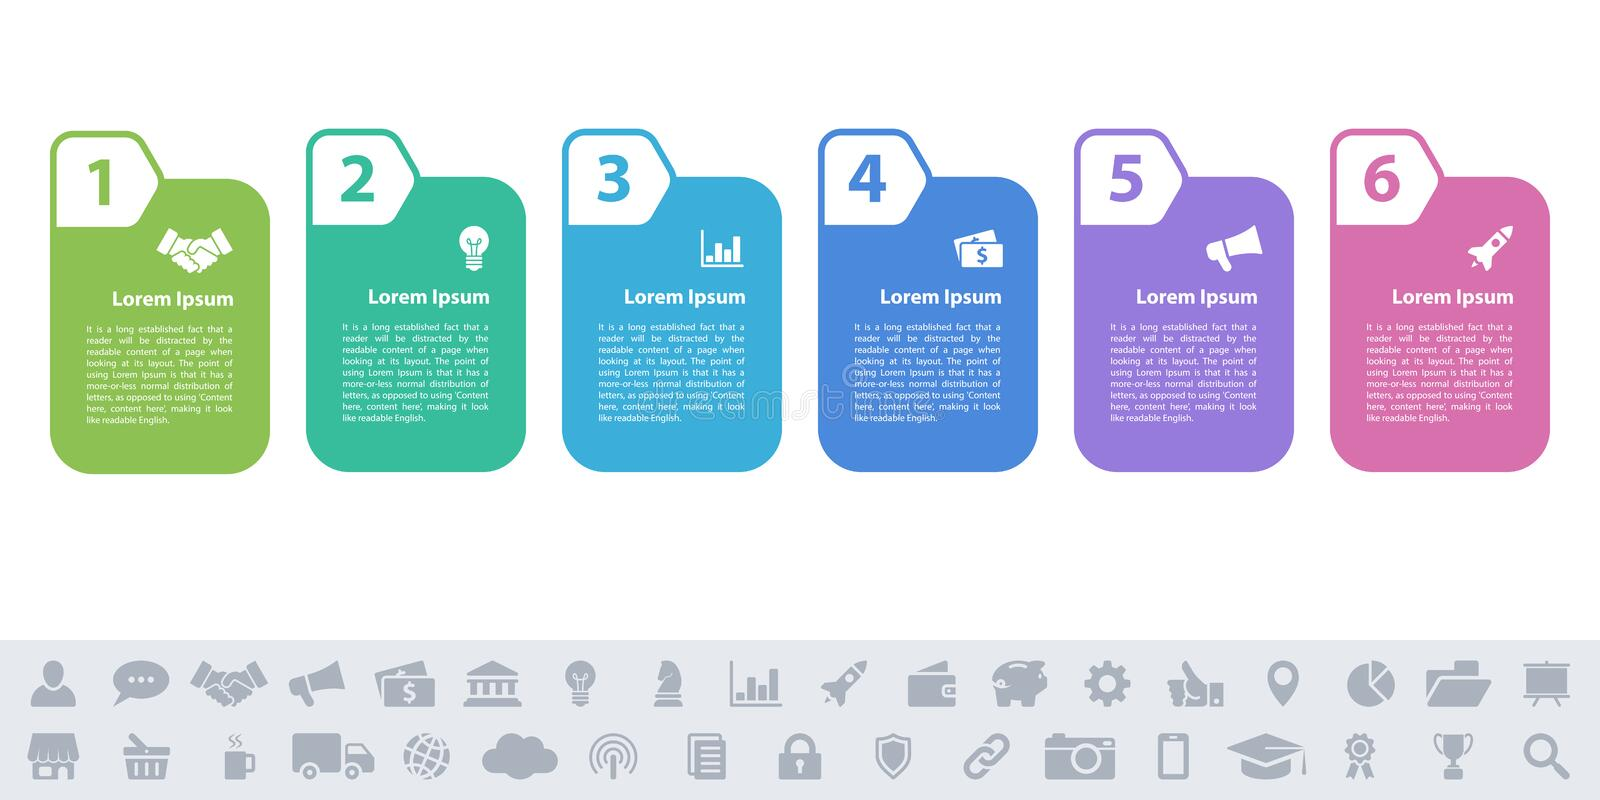 Business infographic design template - 6 steps royalty free illustration